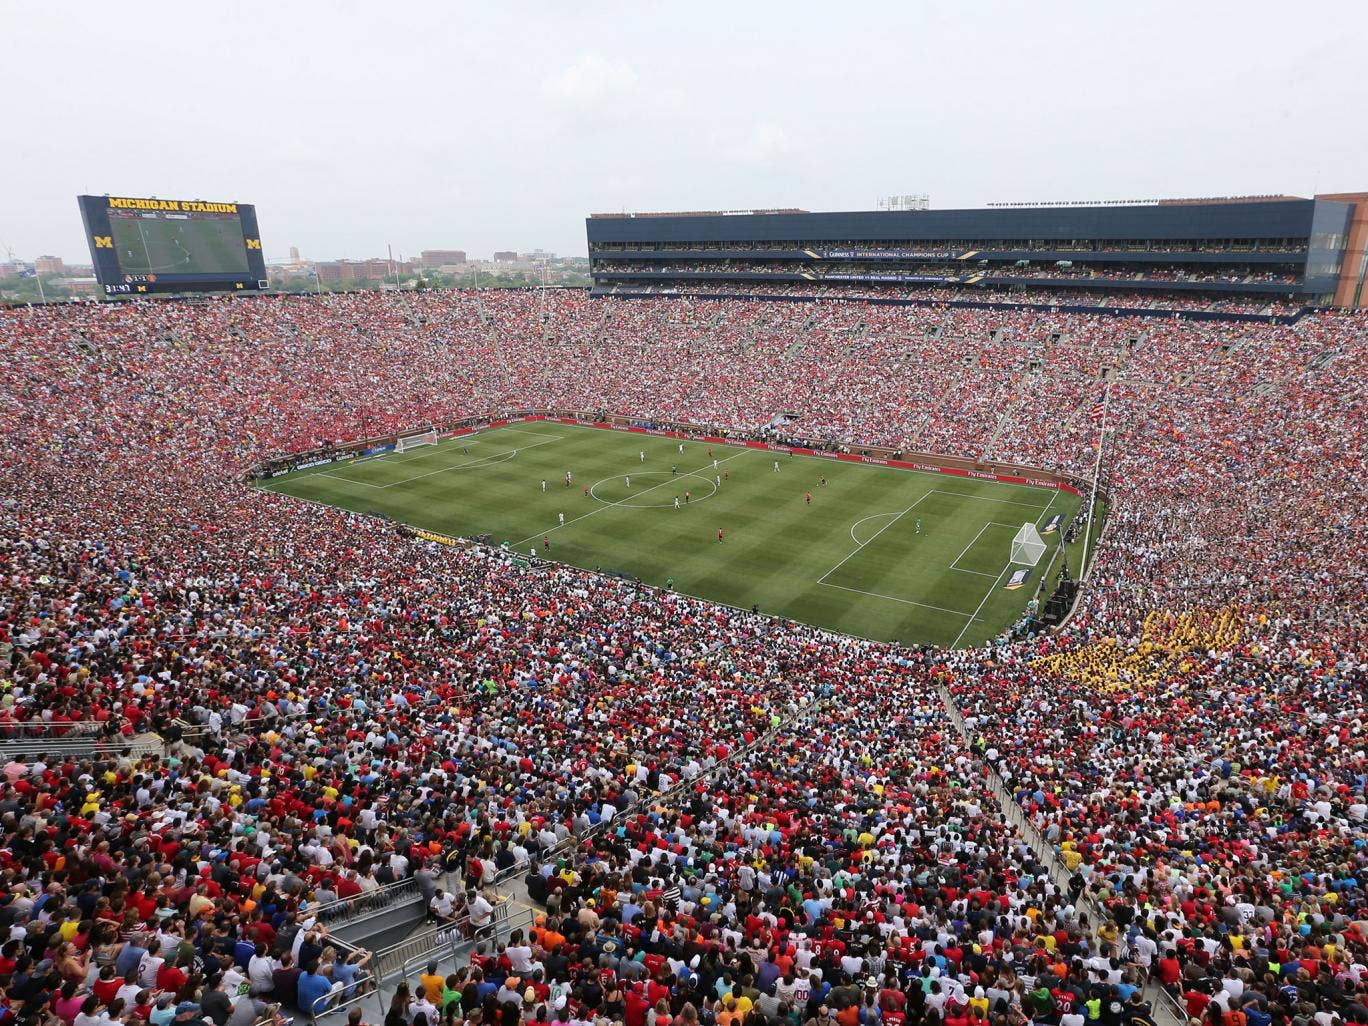 A record crowd for a US soccer match of 109,318 watched Manchester United play Real Madrid in Michigan